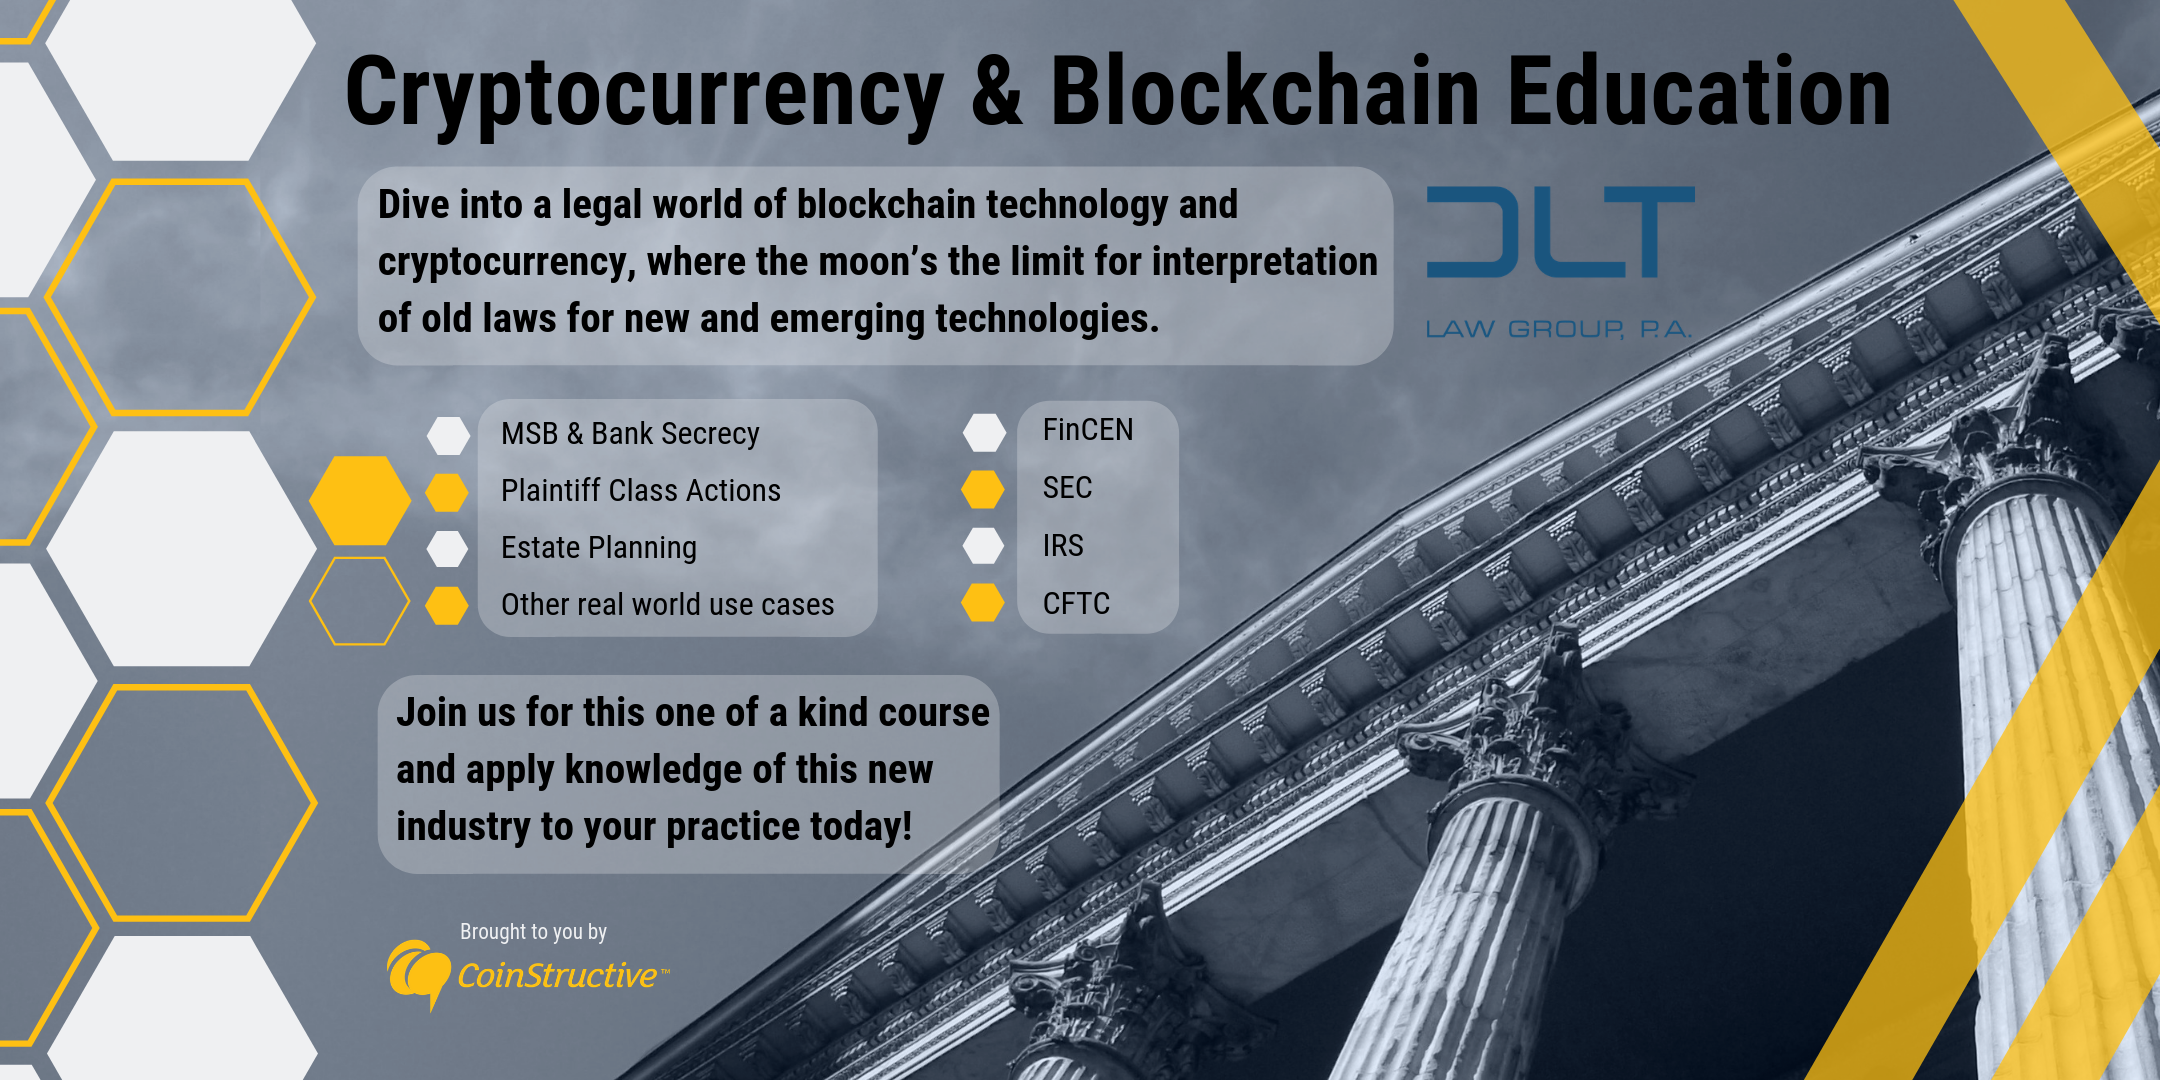 Legal Blockchain and Cryptocurrency Continuing Education